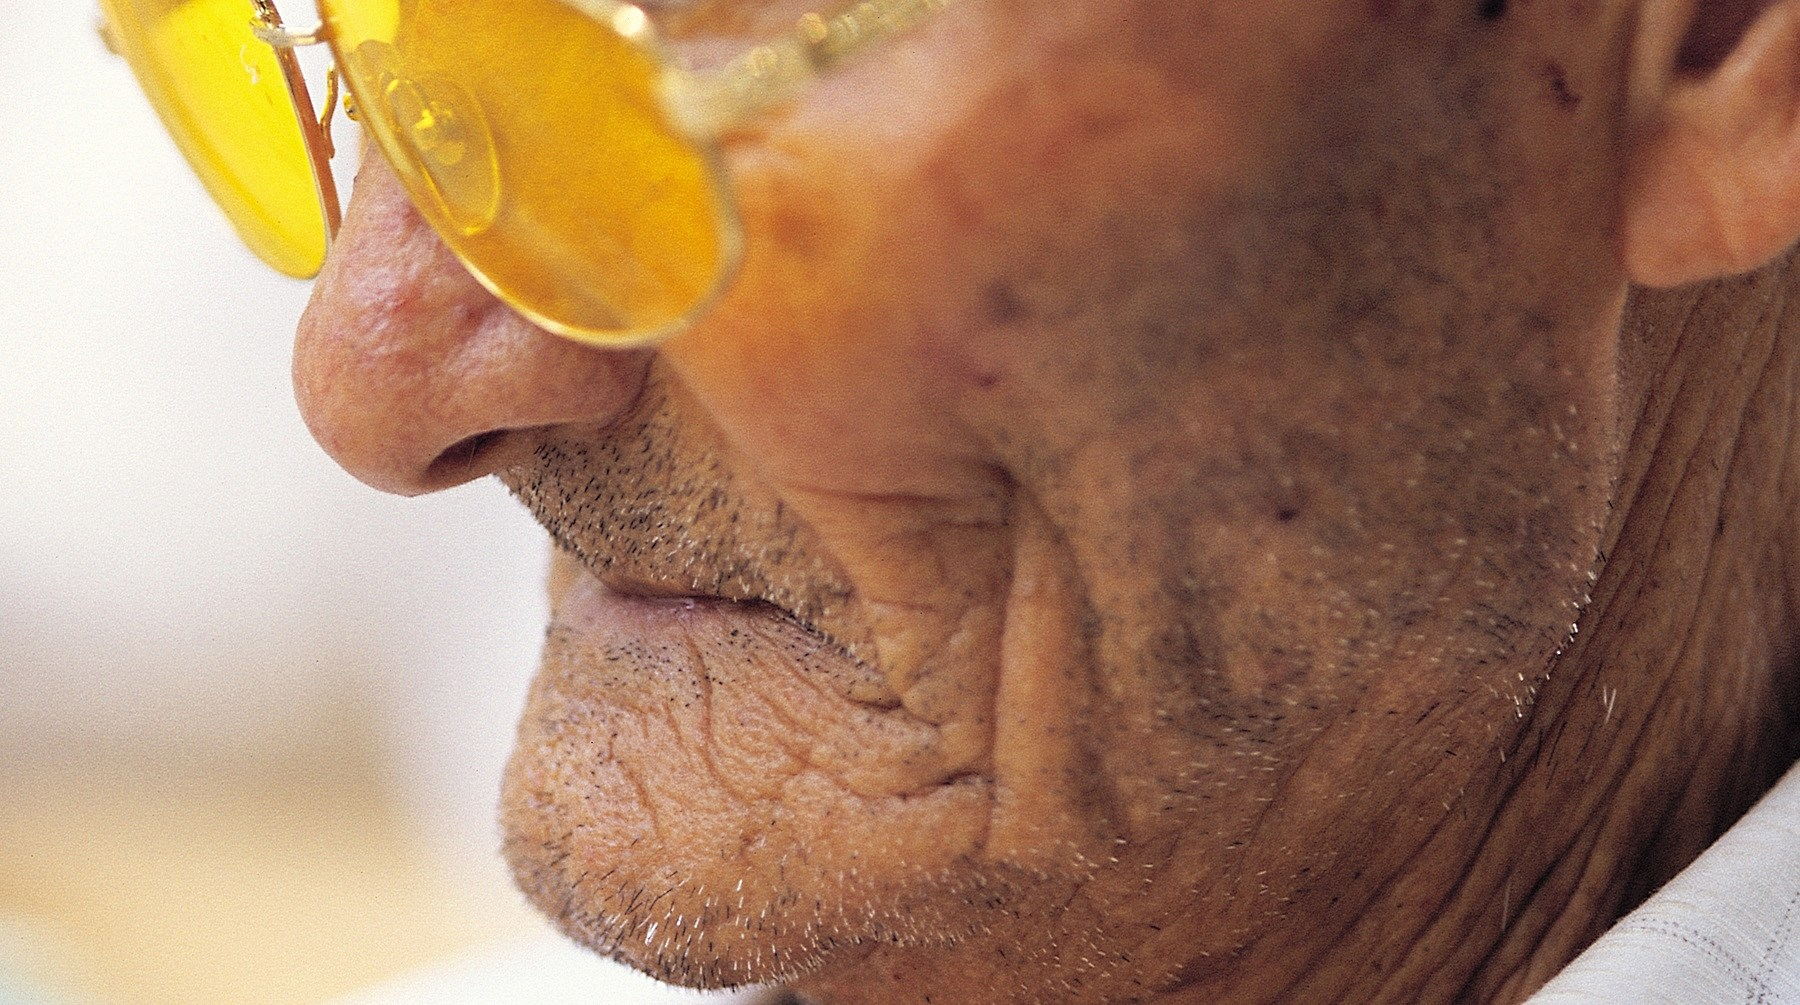 Elderly Man's Nose